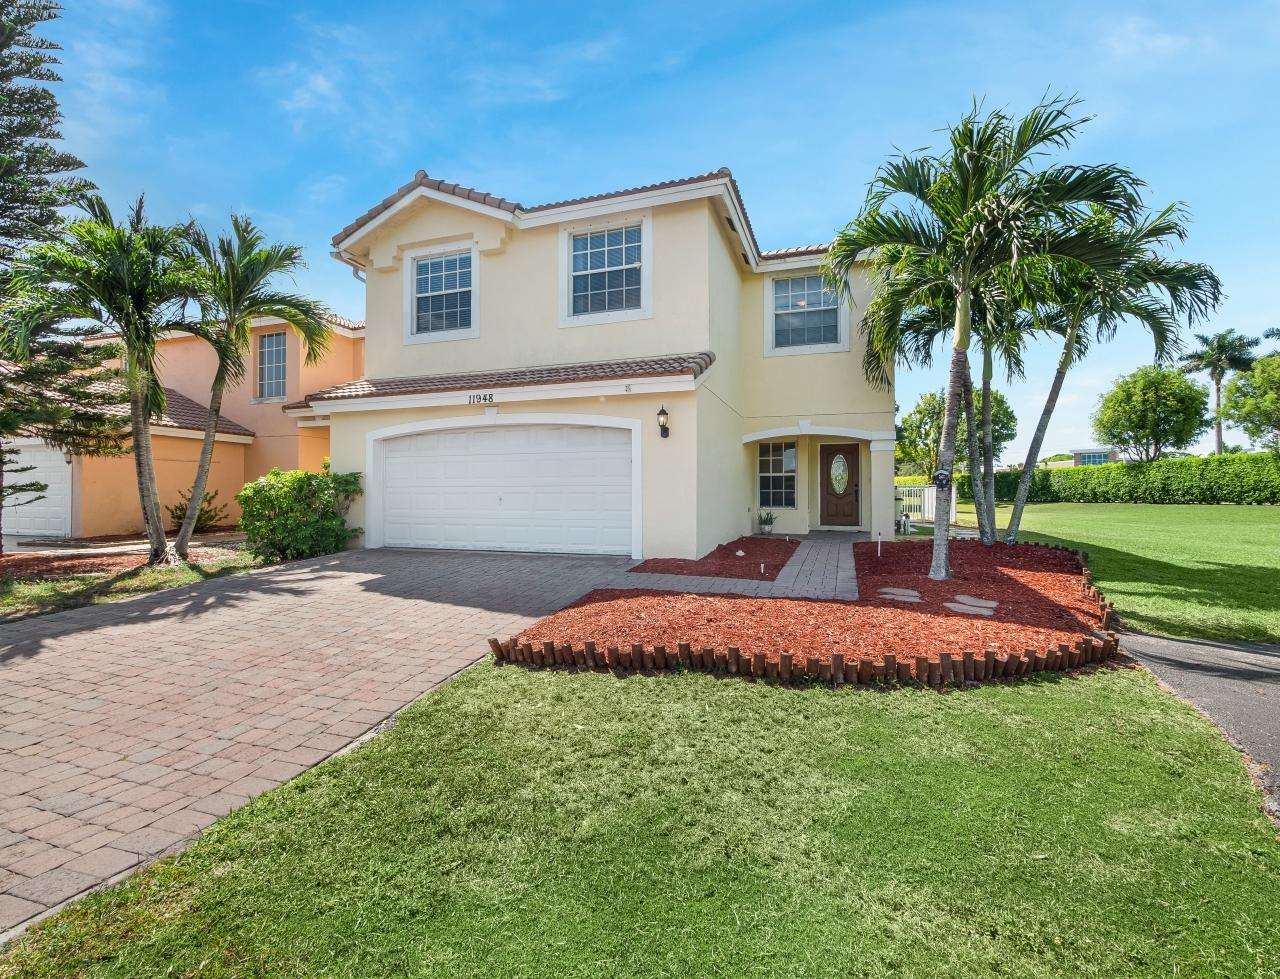 11948  Donlin Drive  For Sale 10720106, FL